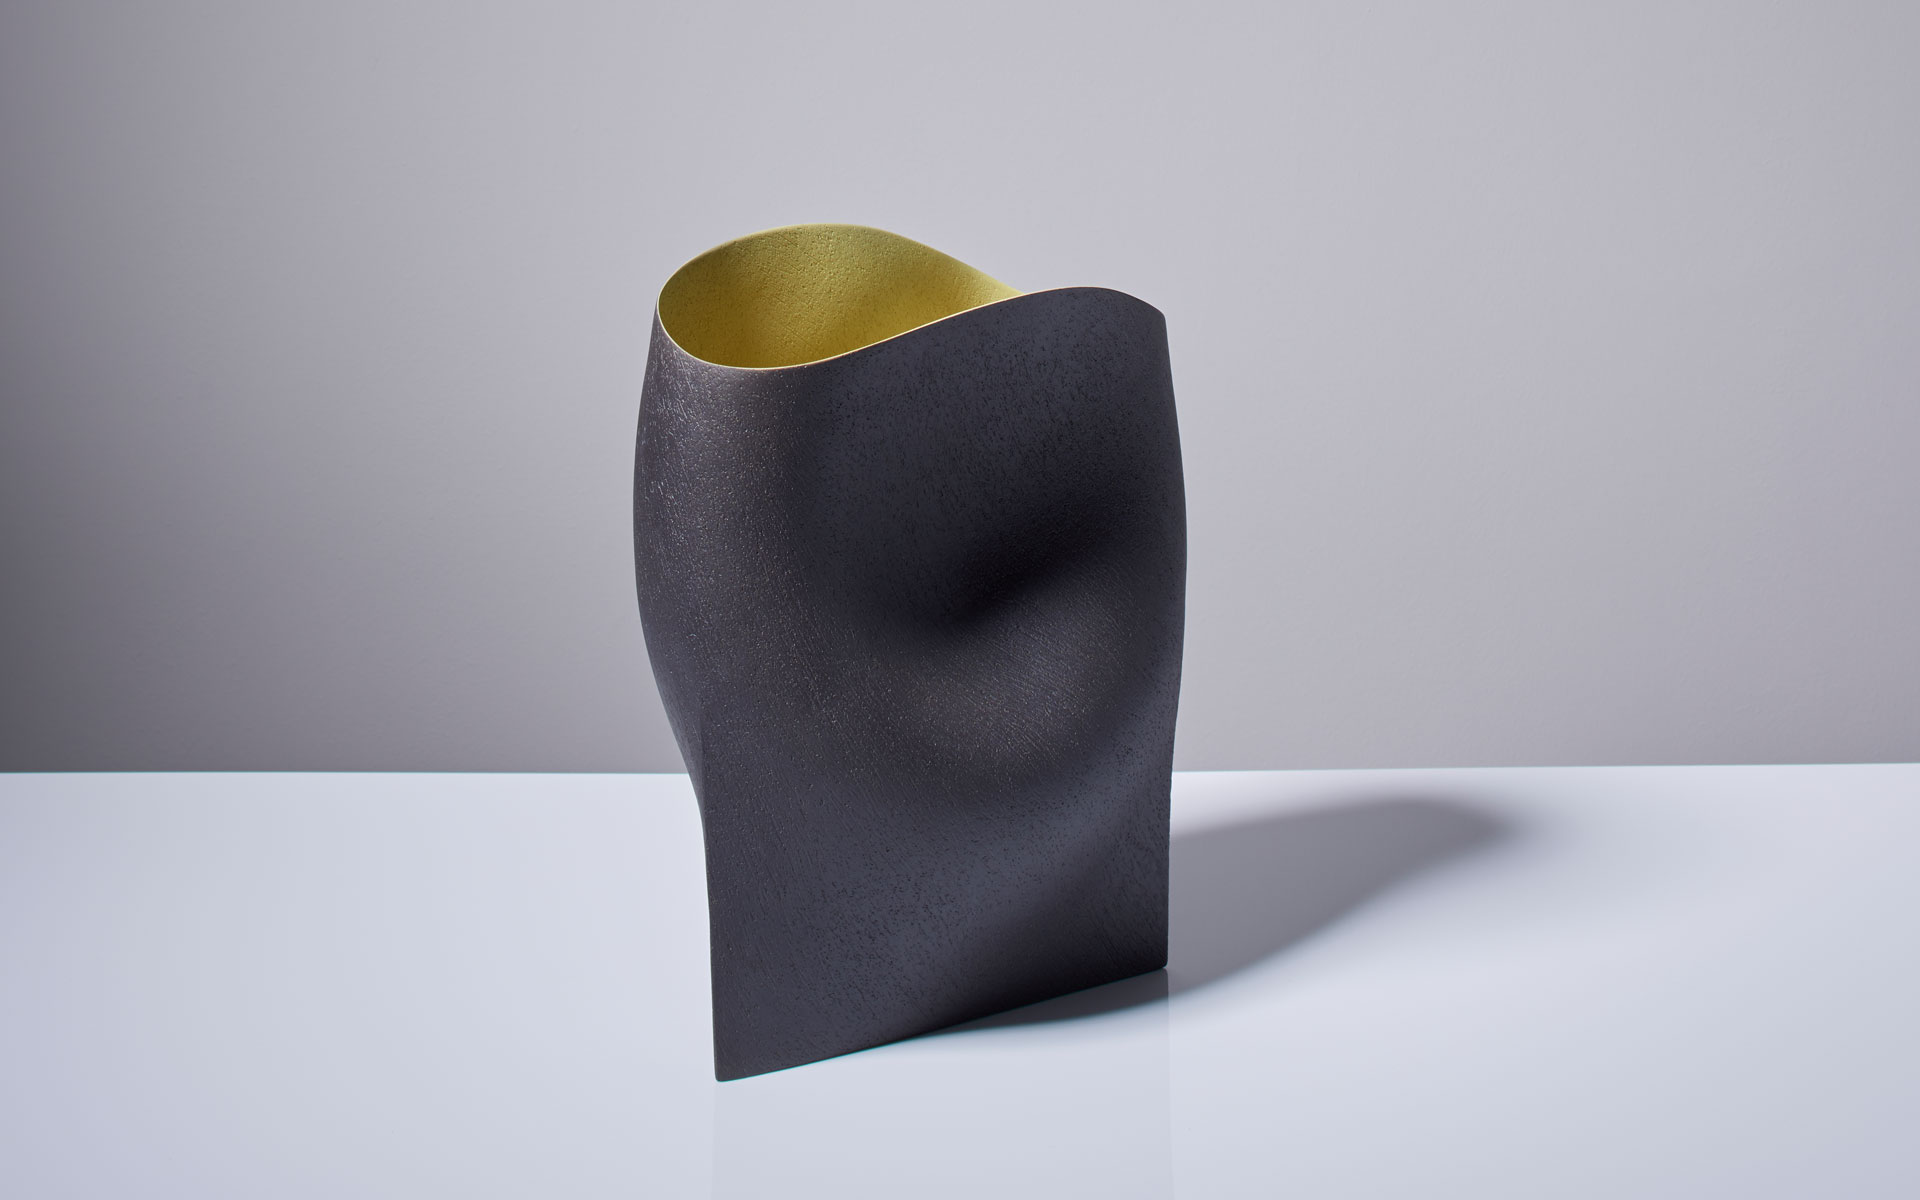 Black Vessel with yellow interior